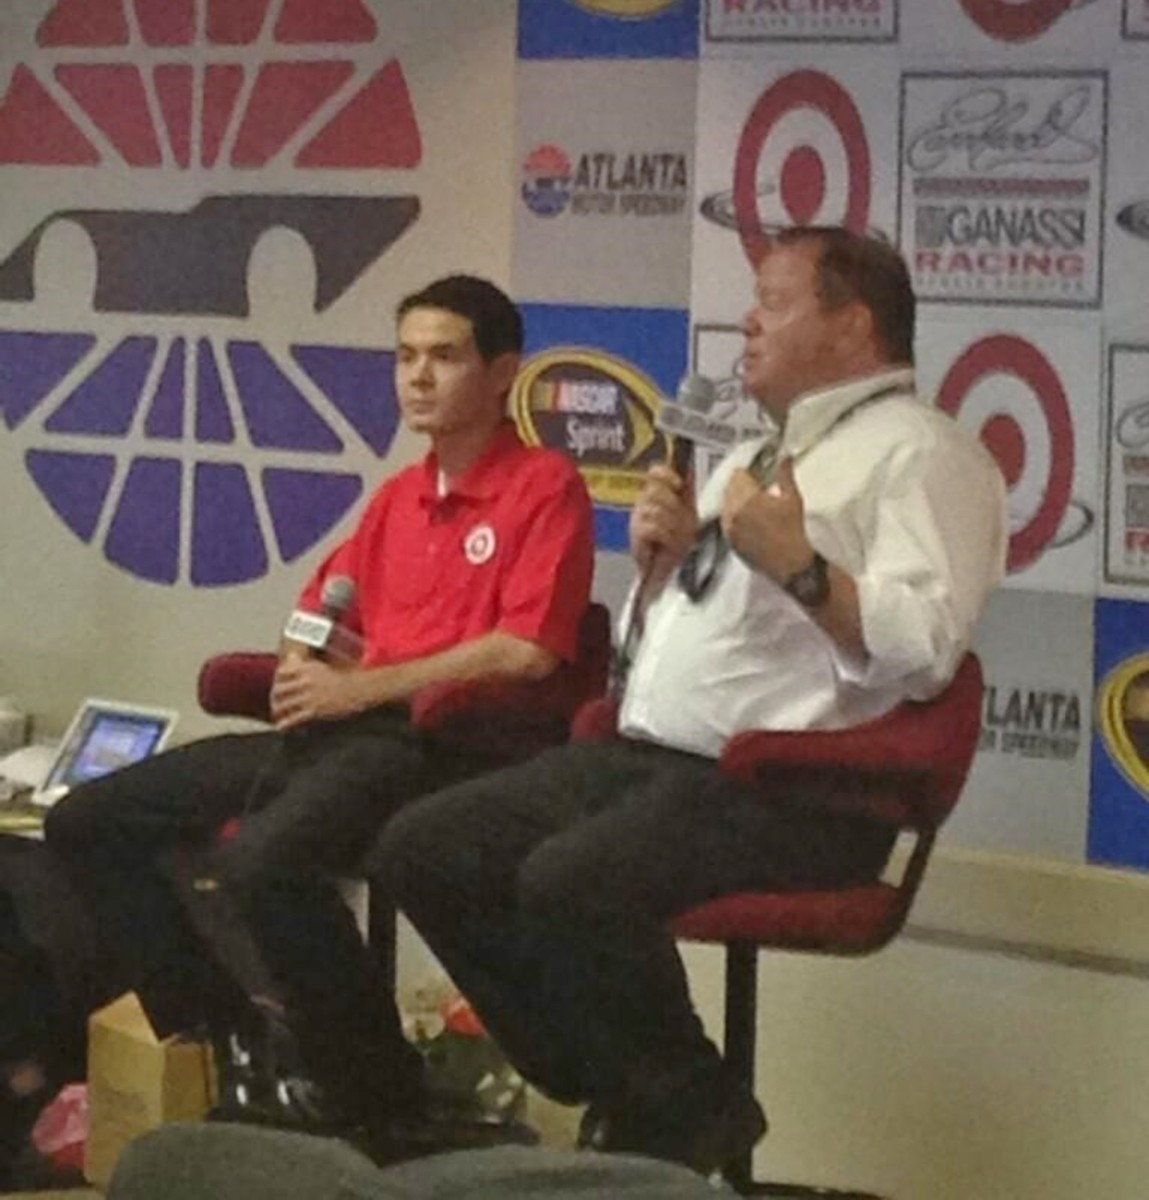 Chip Ganassi hopes that Kyle Larson (left) is the next big thing NASCAR needs to kickoff another growth spurt